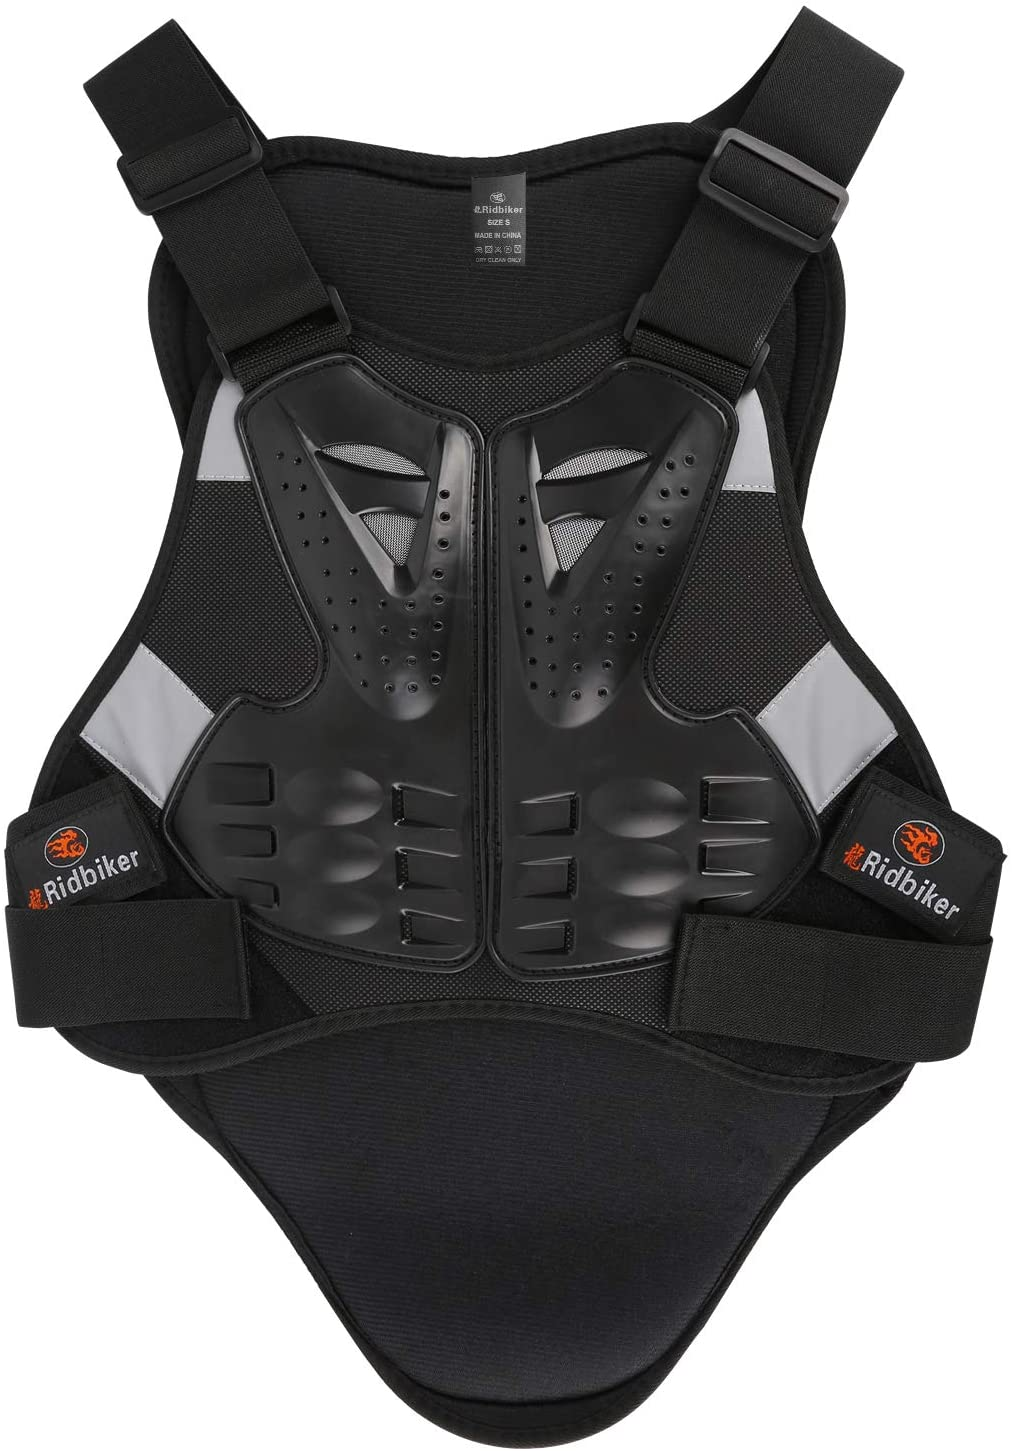 Ridbiker Motorcycle Armor Vest Chest Back Spine Protector Touring Motocross Off-Road Racing Cycling Body Guard,Black,L